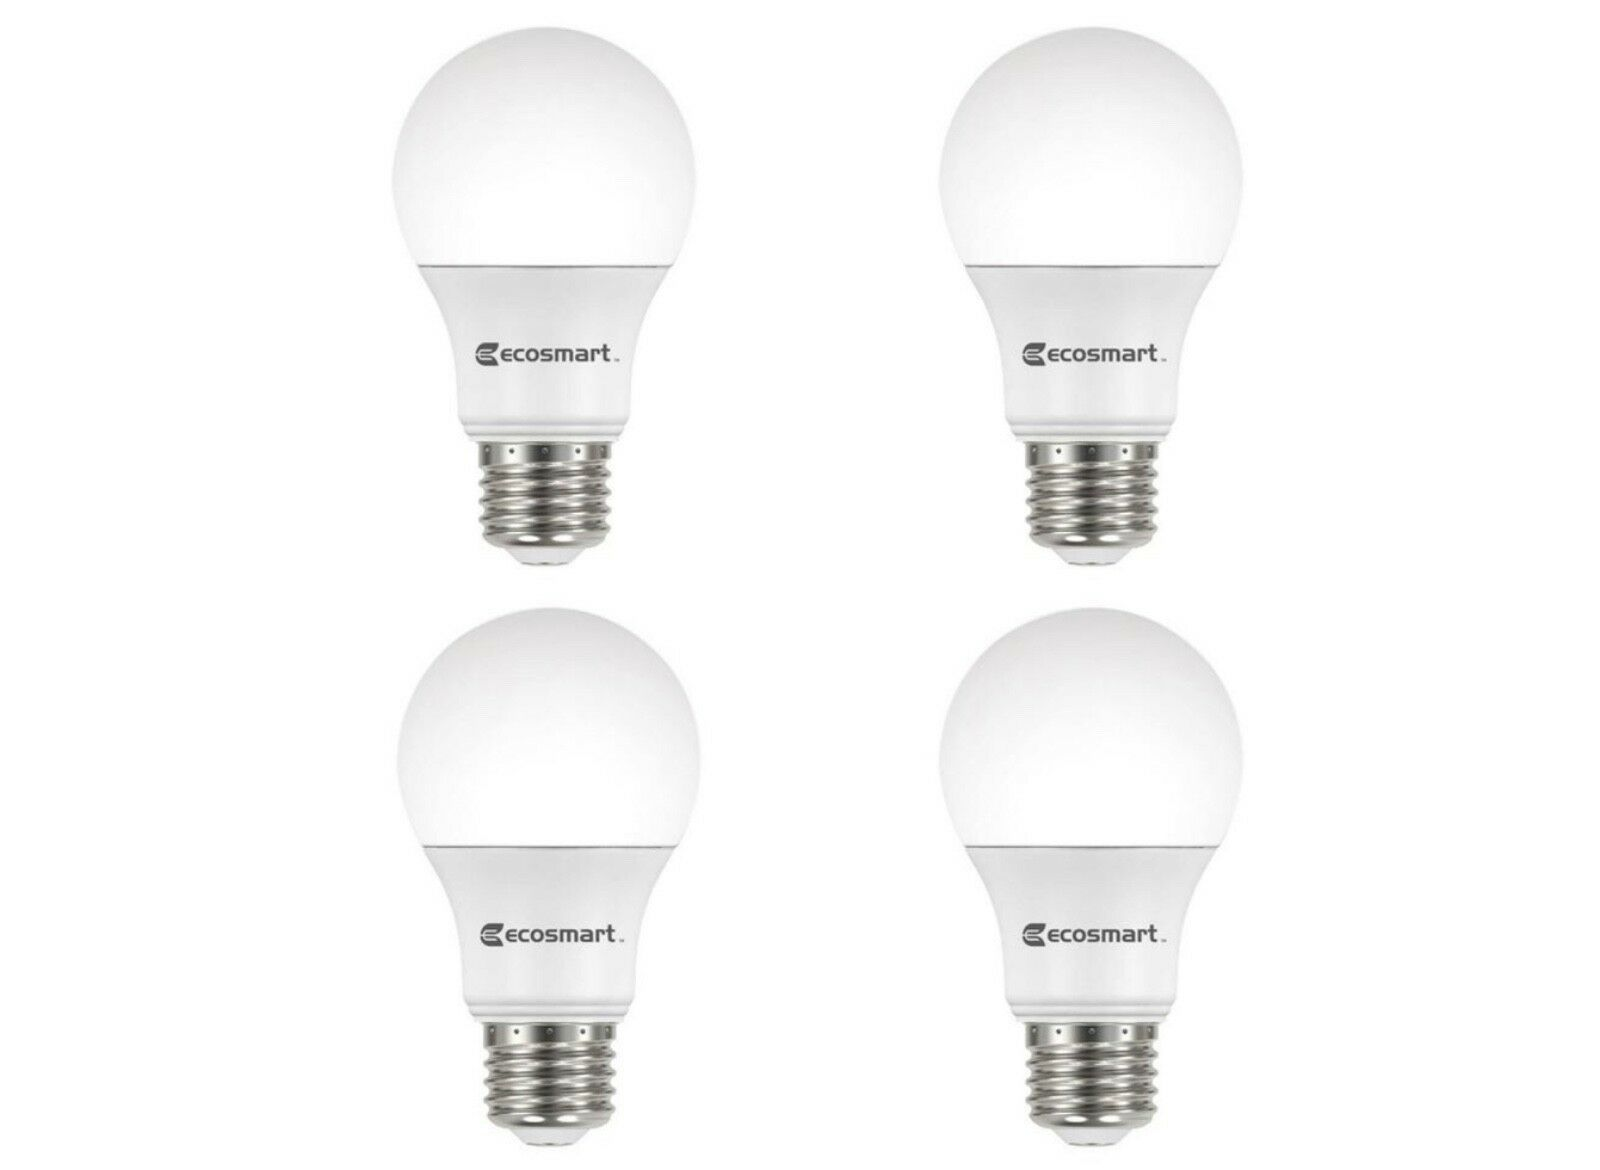 Primary image for EcoSmart 60-Watt Equivalent A19 Dimmable LED Light Bulb Soft White (4 Pack)